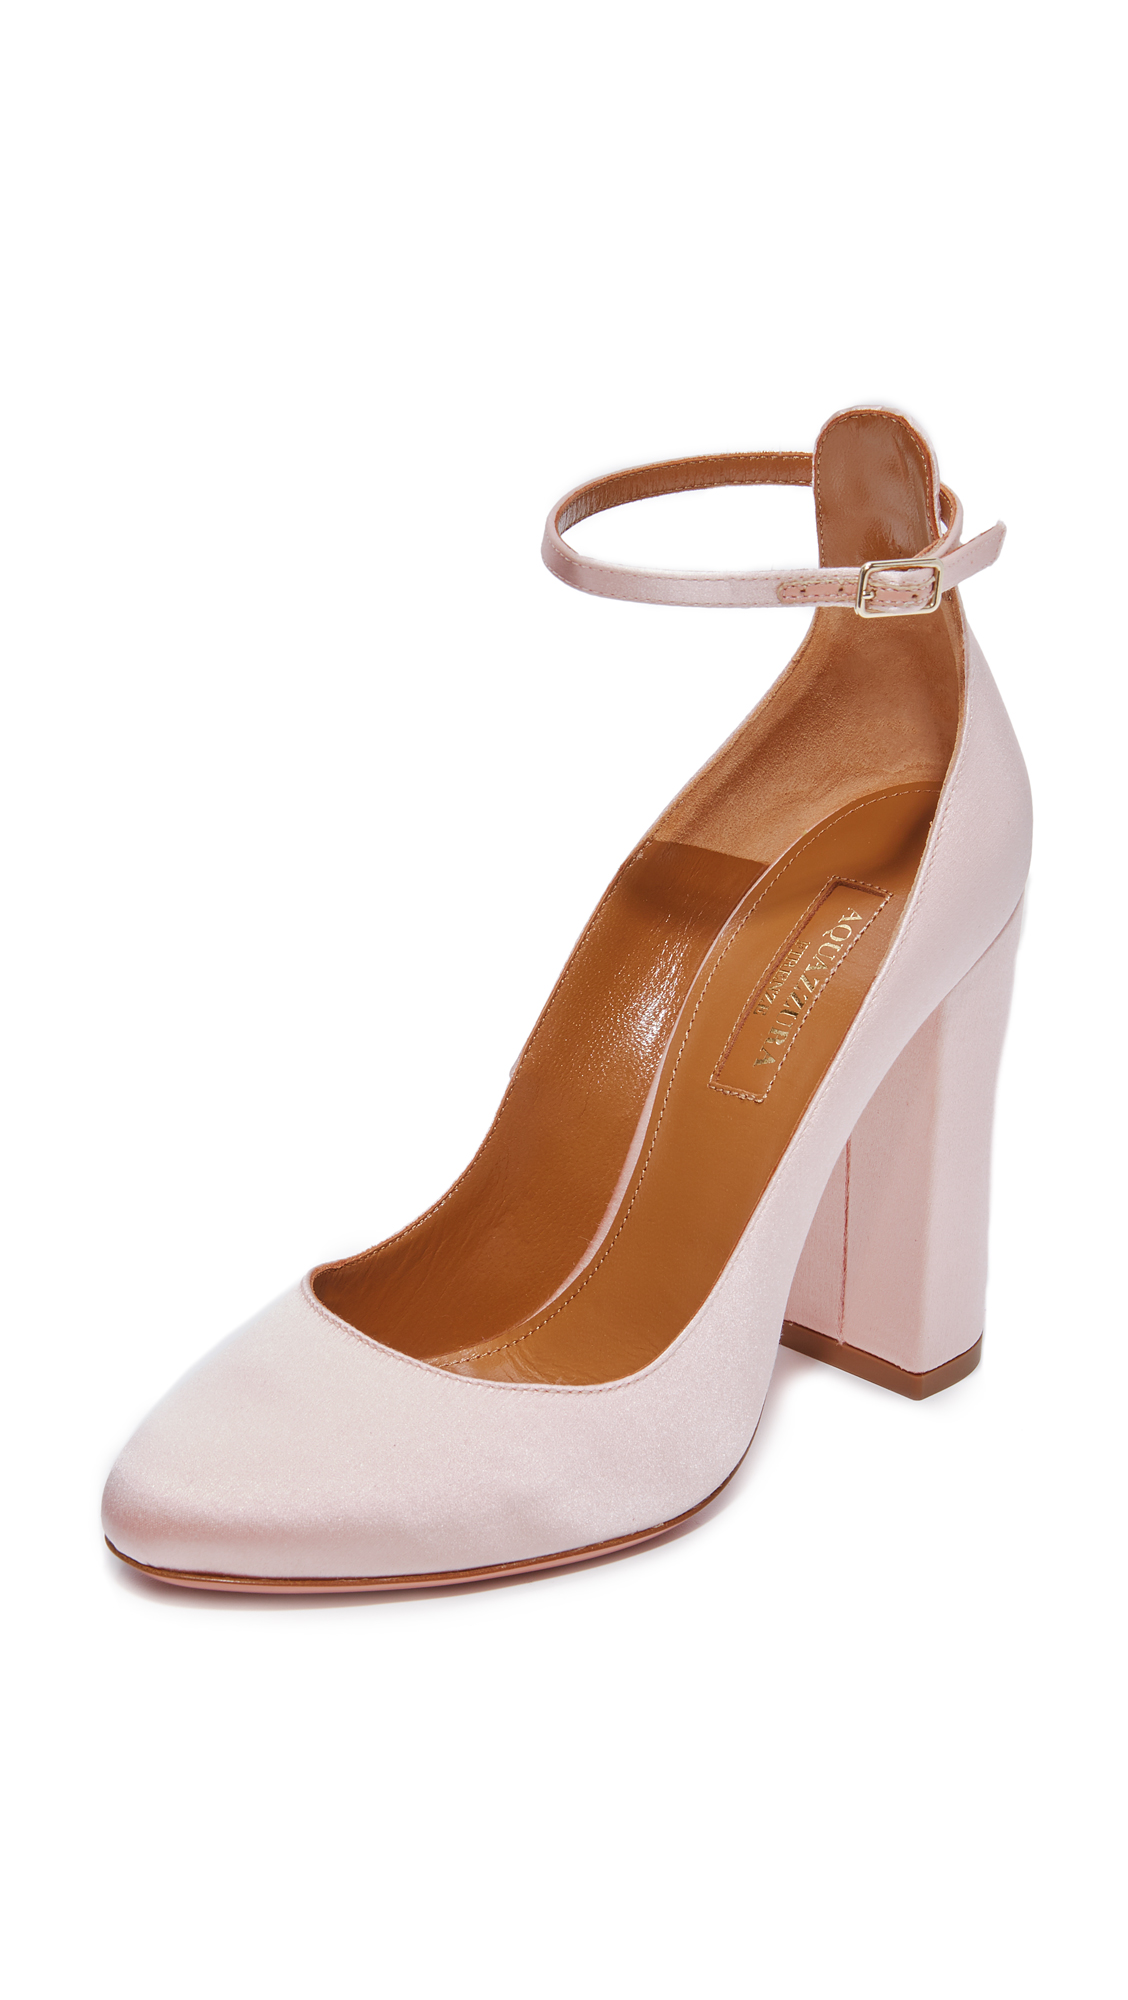 Aquazzura Alix 105 Pumps - Pink